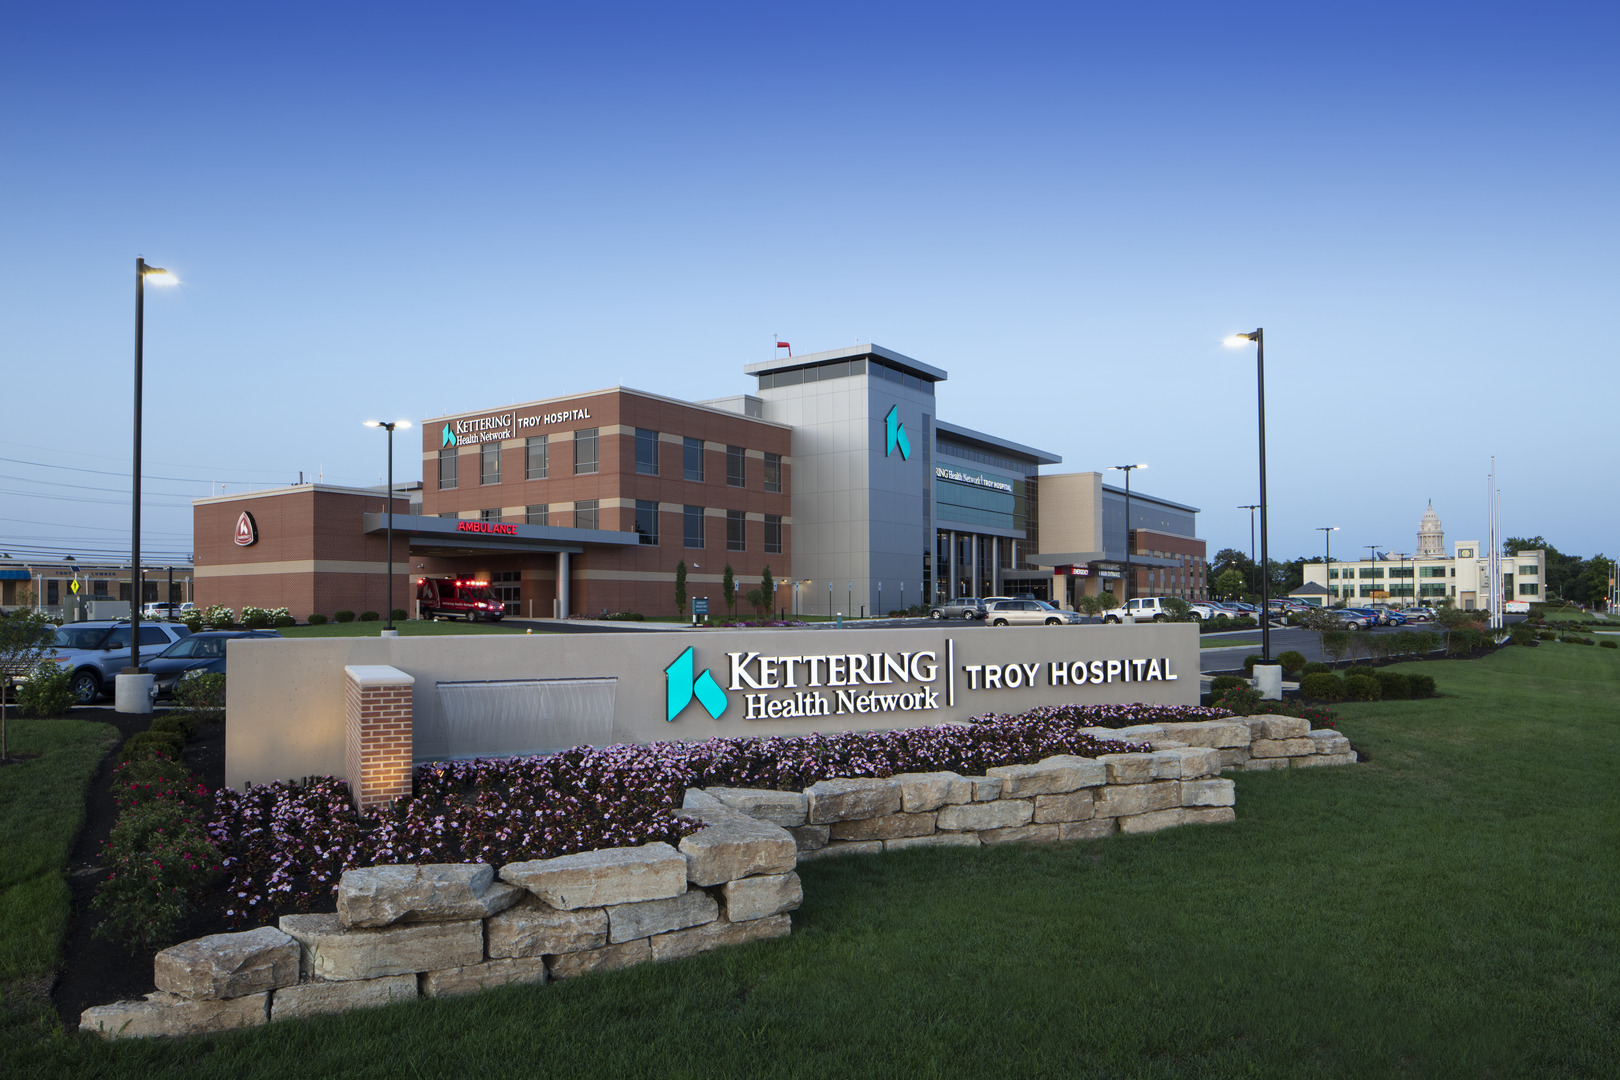 Kettering Health Network front view and sign with logo, surrounded by flowers